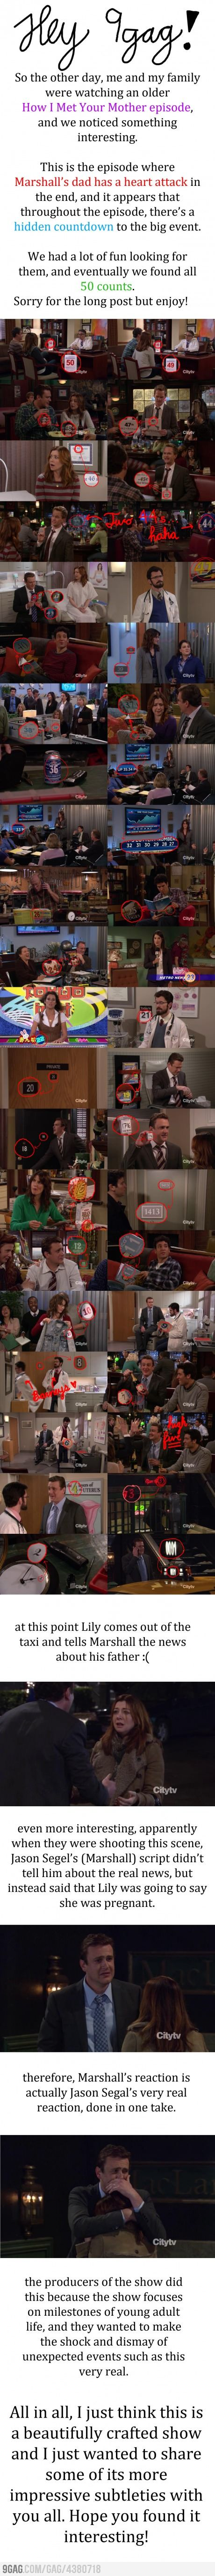 Hidden messages in How I Met Your Mother! (found by other pinner)